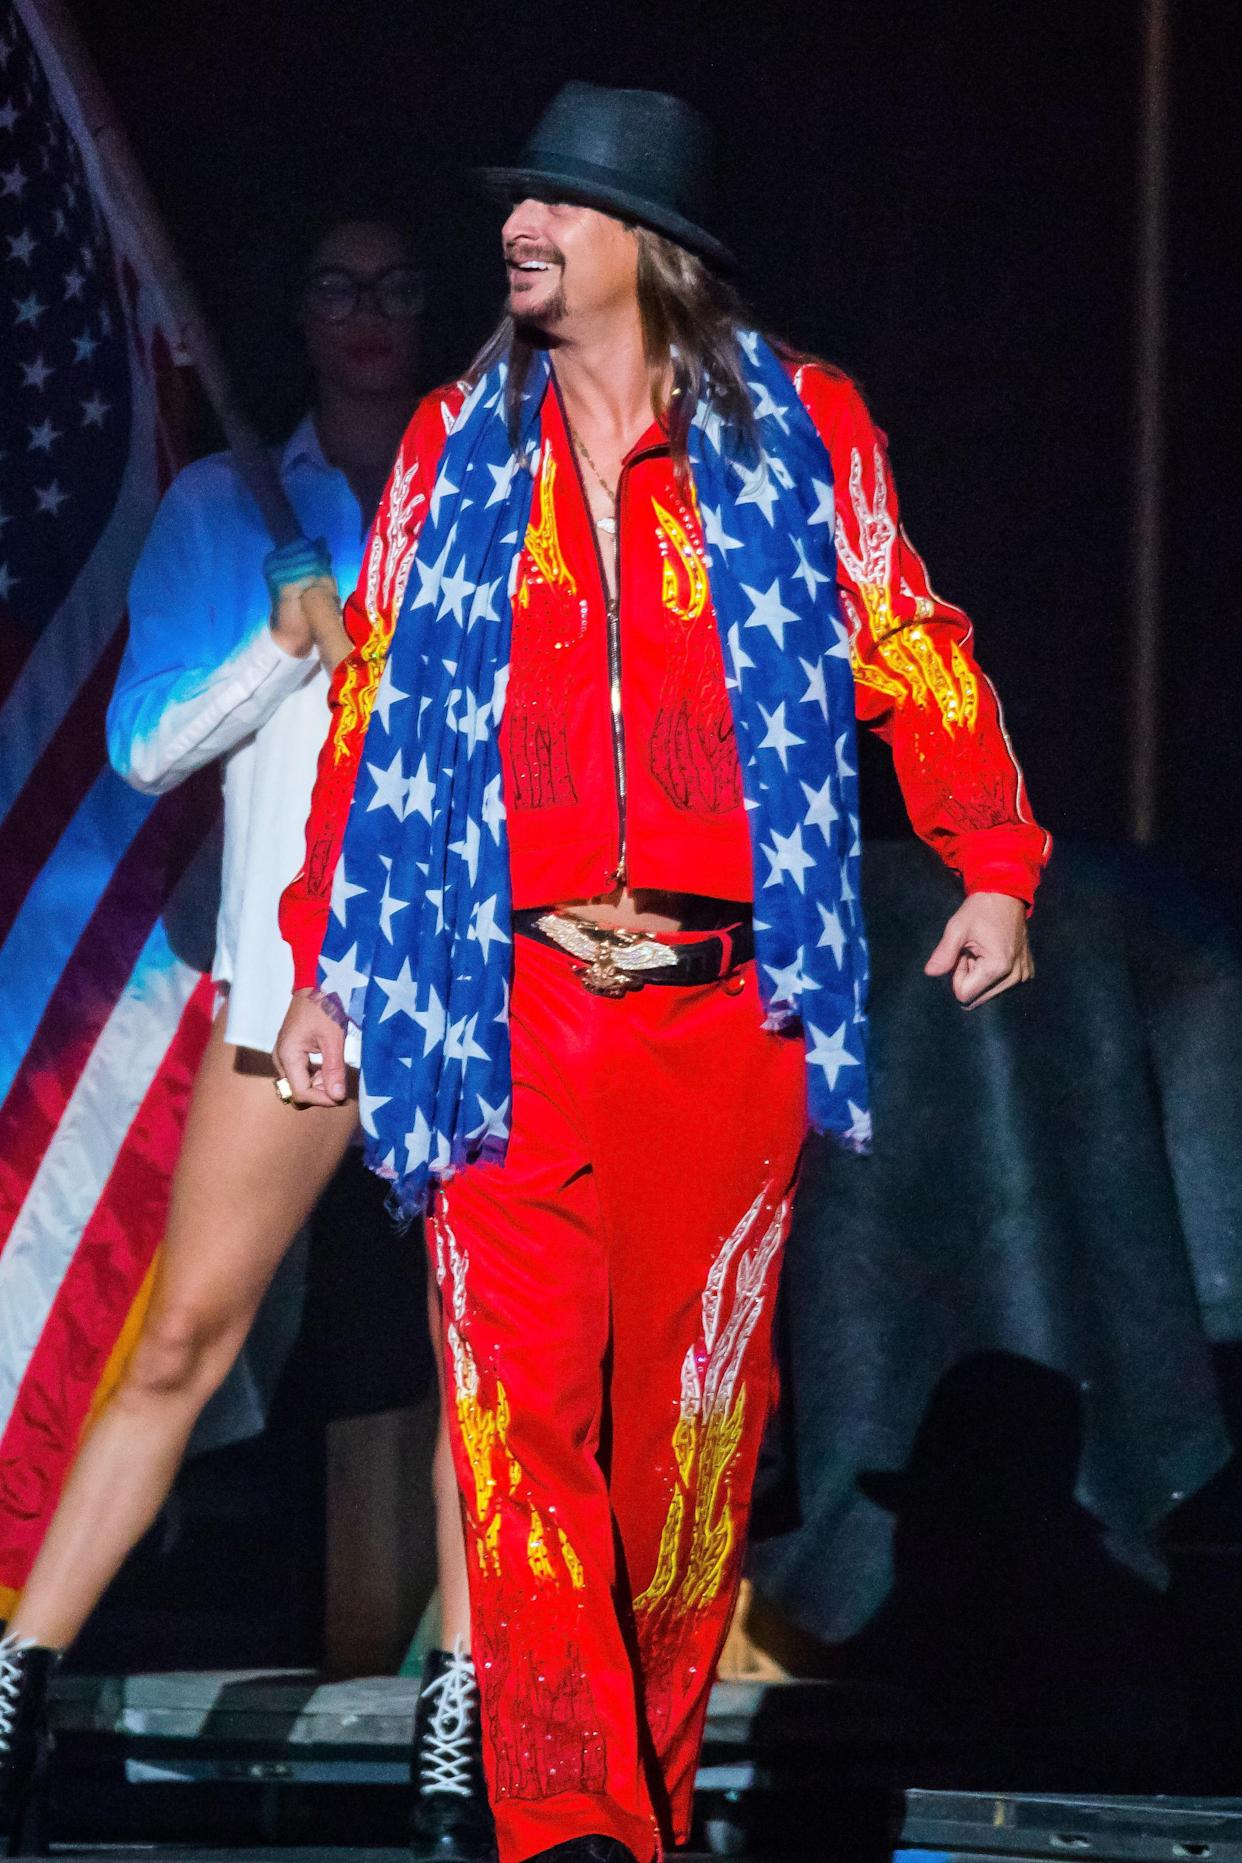 DETROIT, MI - SEPTEMBER 20:  Kid Rock performs at Little Caesars Arena on September 20, 2017 in Detroit, Michigan.  (Photo by Scott Legato/Getty Images)